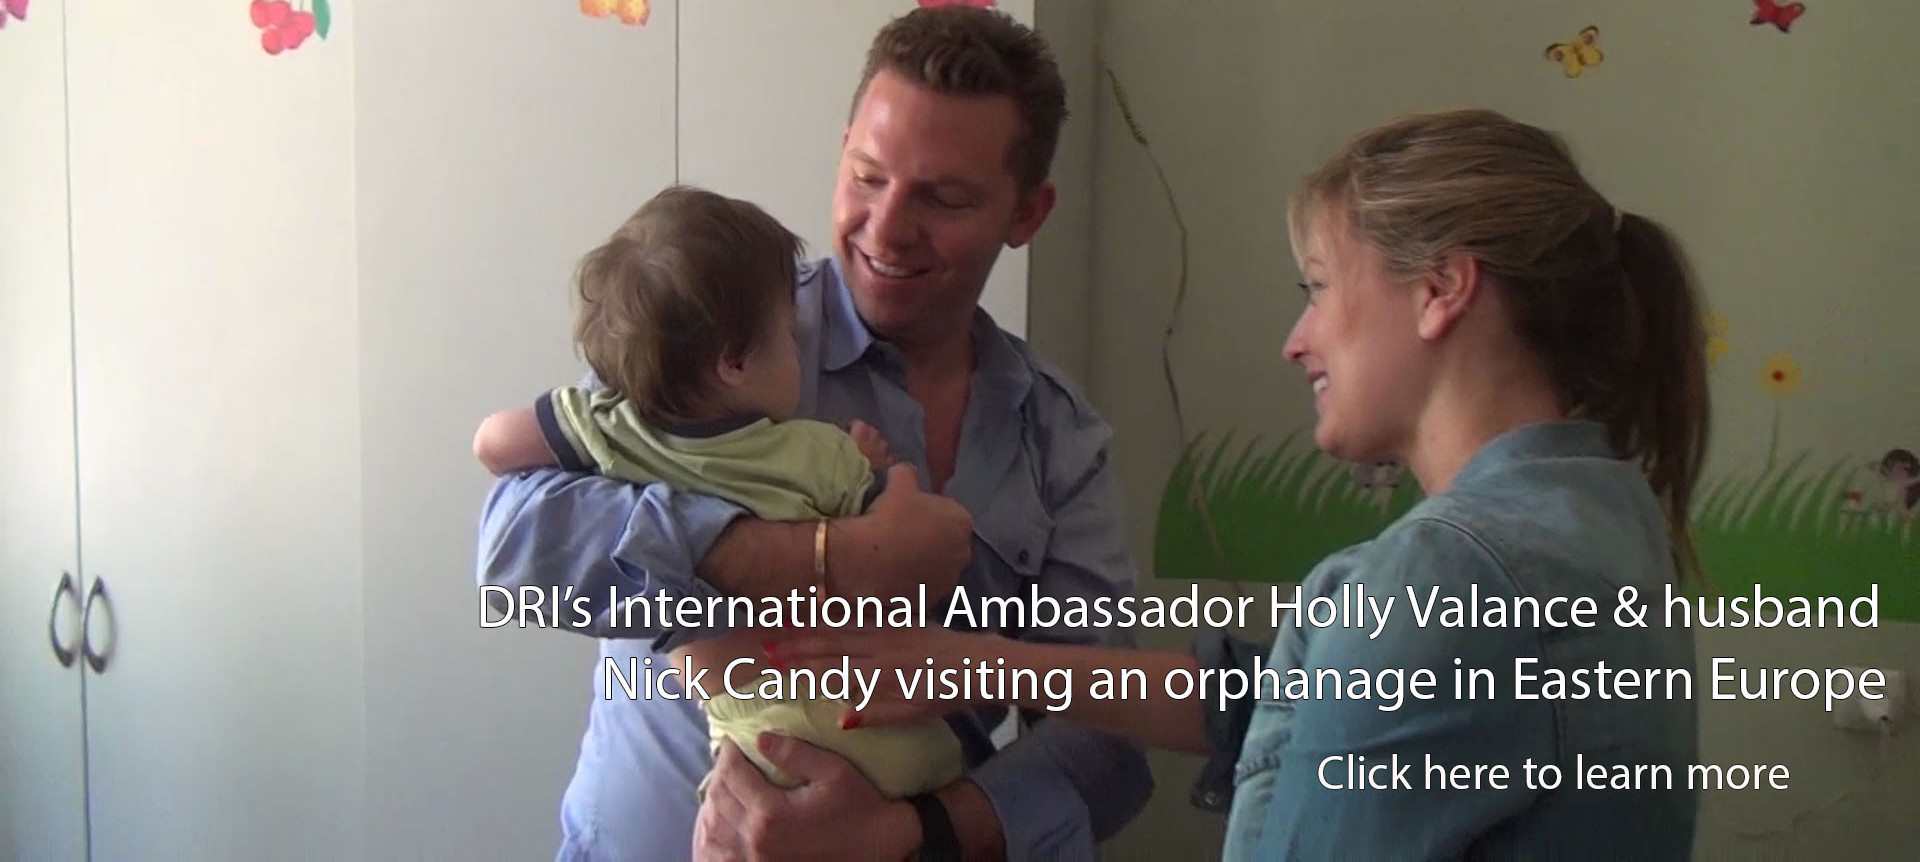 DRI International Ambassador Holly Valance and Nick Candy